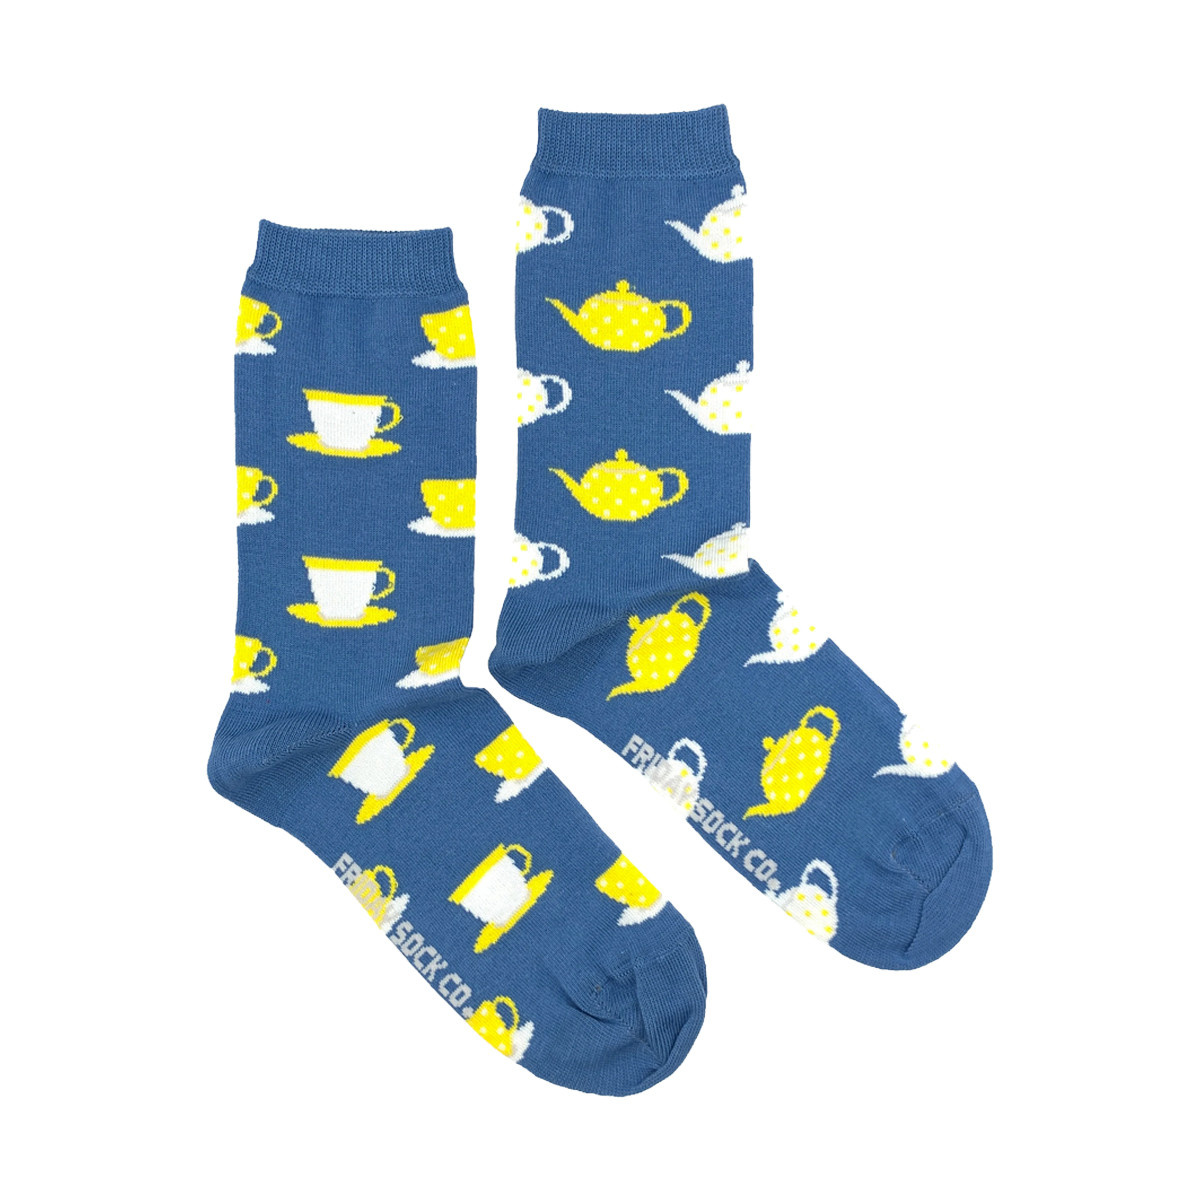 Friday Sock Co. Friday Sock Co. Women's Teacup Crew W 5 - 10 (M - 4 - 8)